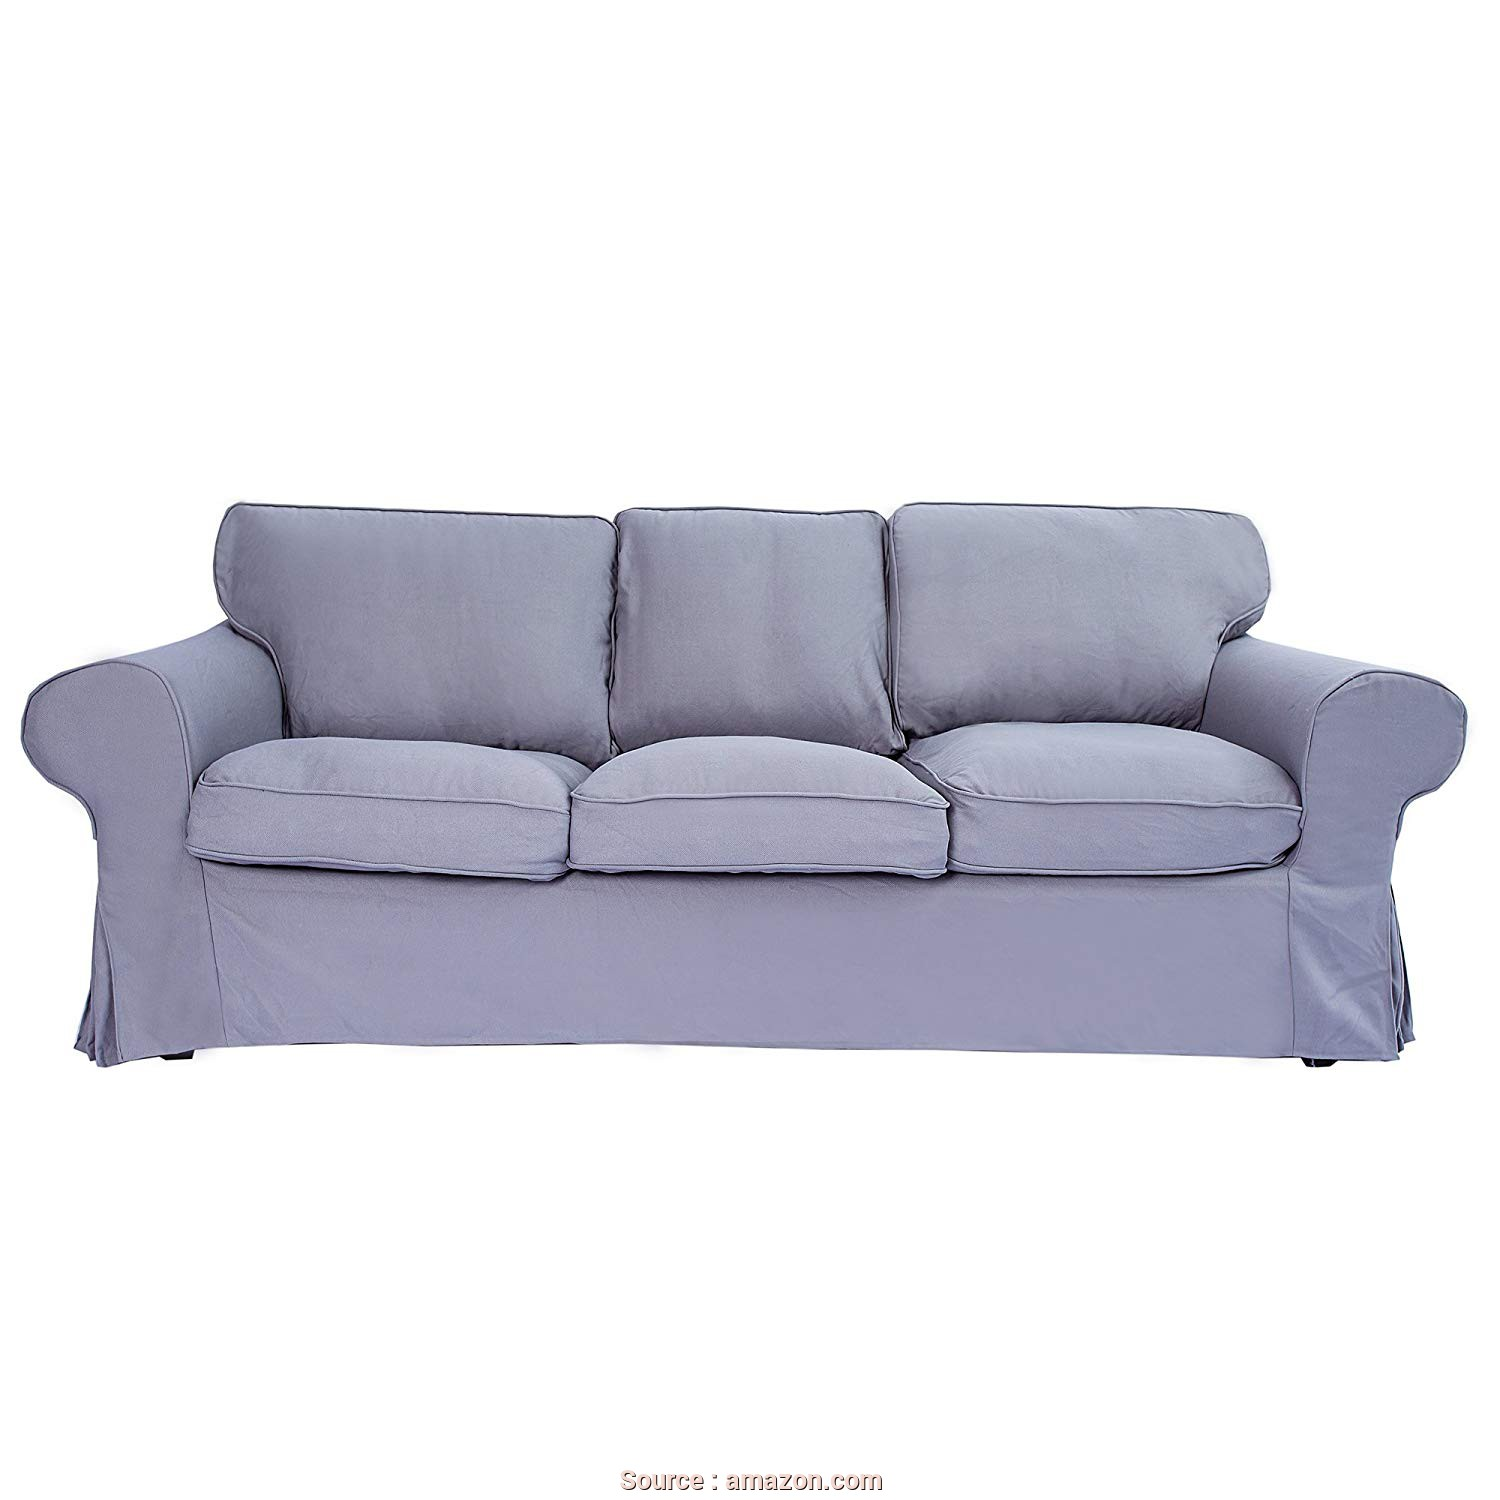 Futon Ikea Fr, Locale Amazon.Com: KEQIAOSUOCAI Flame Retardant Sofa Cover Made, The Ektorp 3 Seat Sofa Cover,Off White: Home & Kitchen